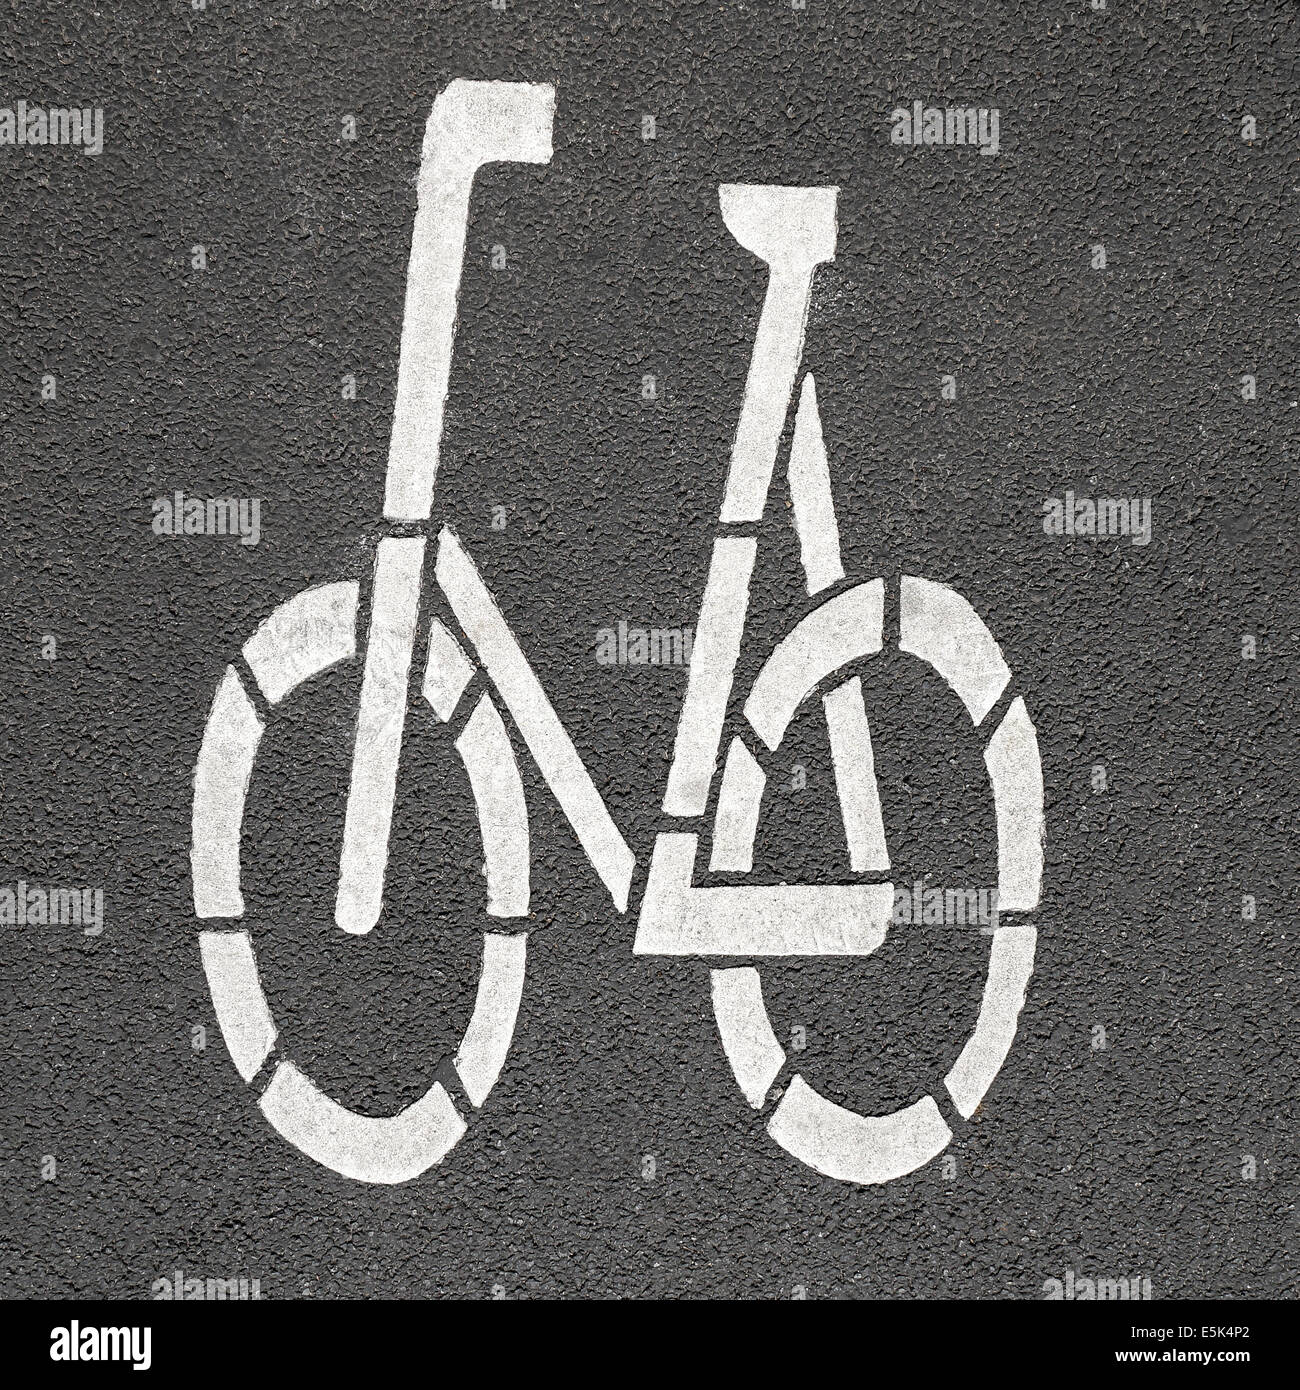 bicycle pictogram painted on asphalt - Stock Image